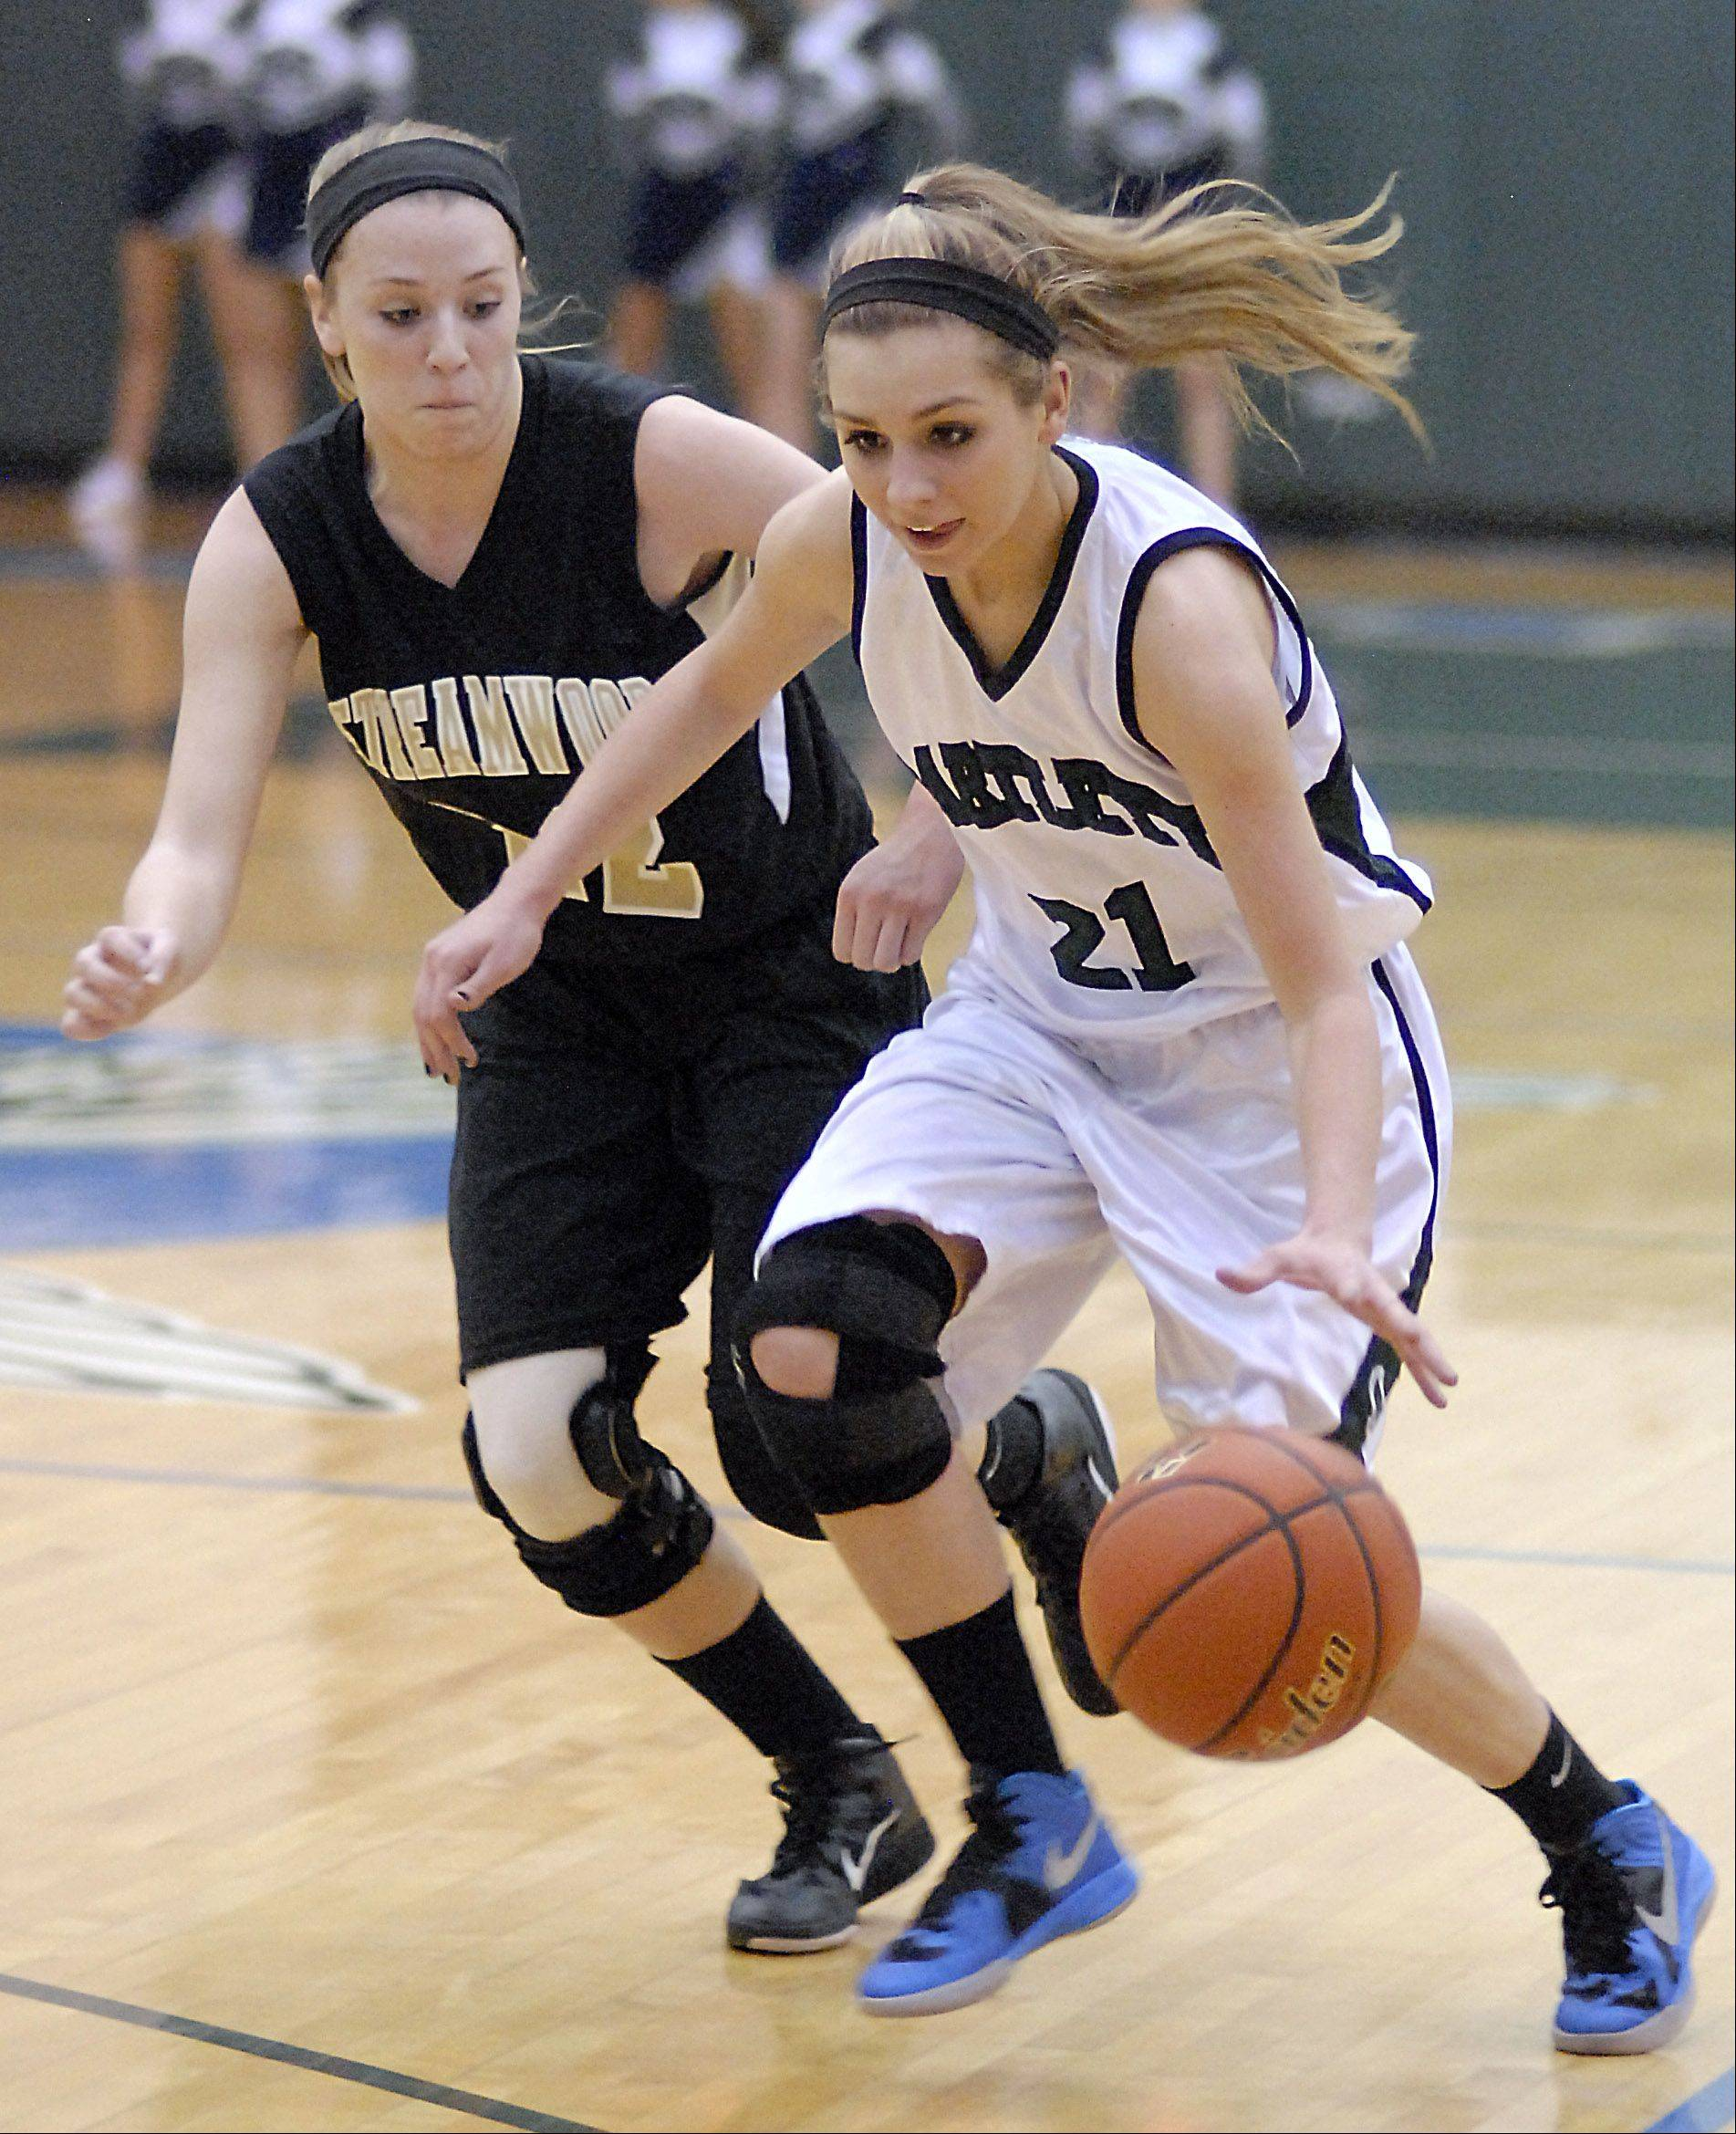 Streamwood's Holly Foret covers Bartlett's Chantel Zasada as she makes her way up the court in the second quarter.